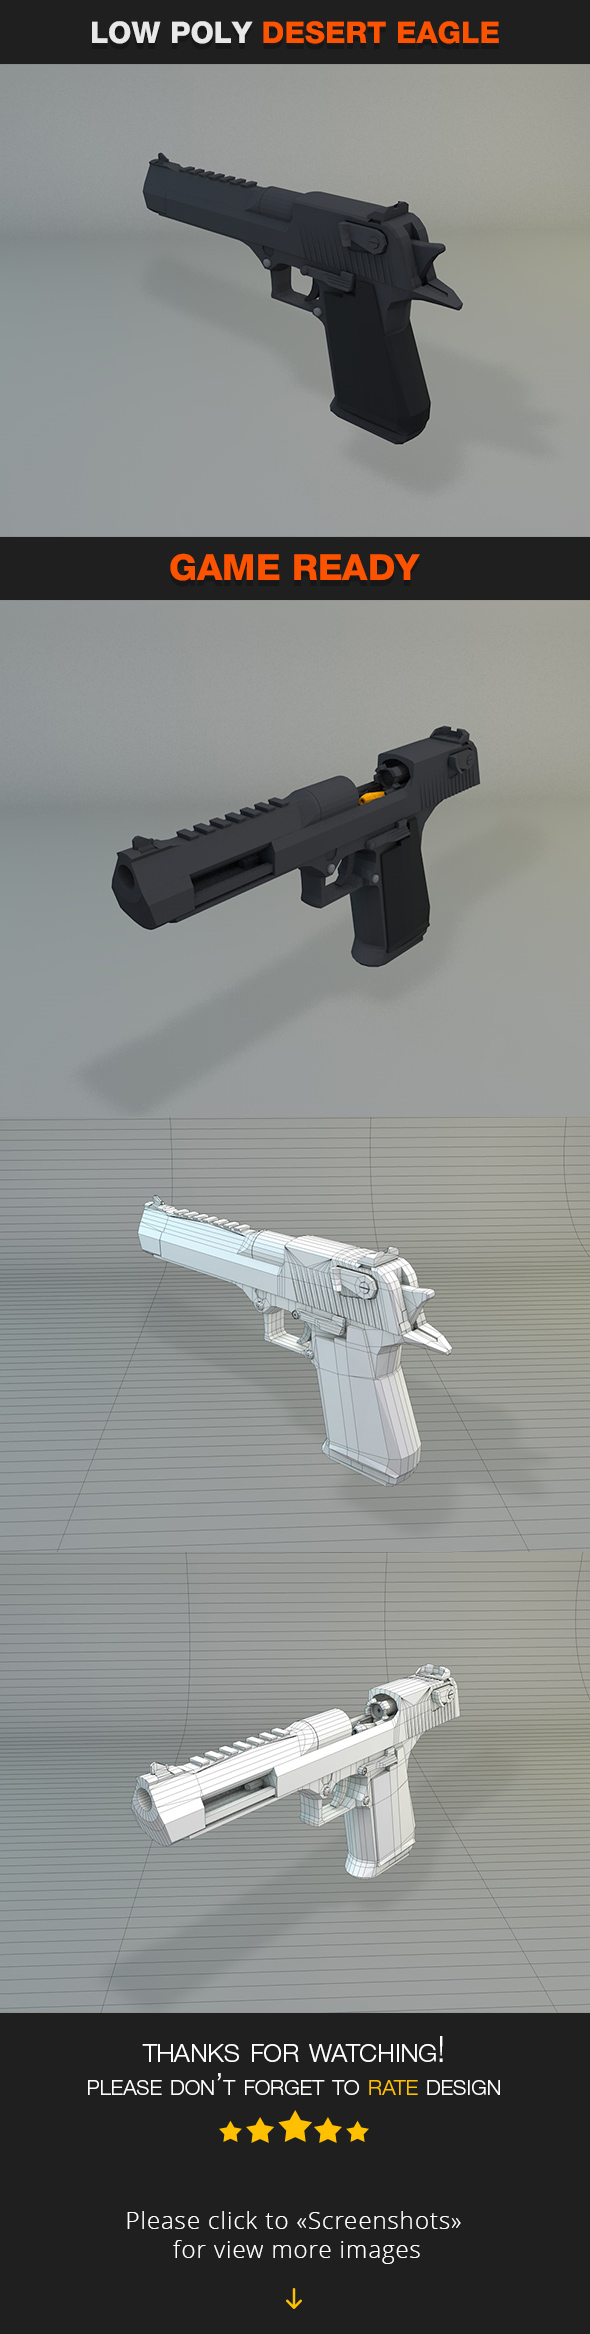 3DOcean Low Poly Desert Eagle 19991840